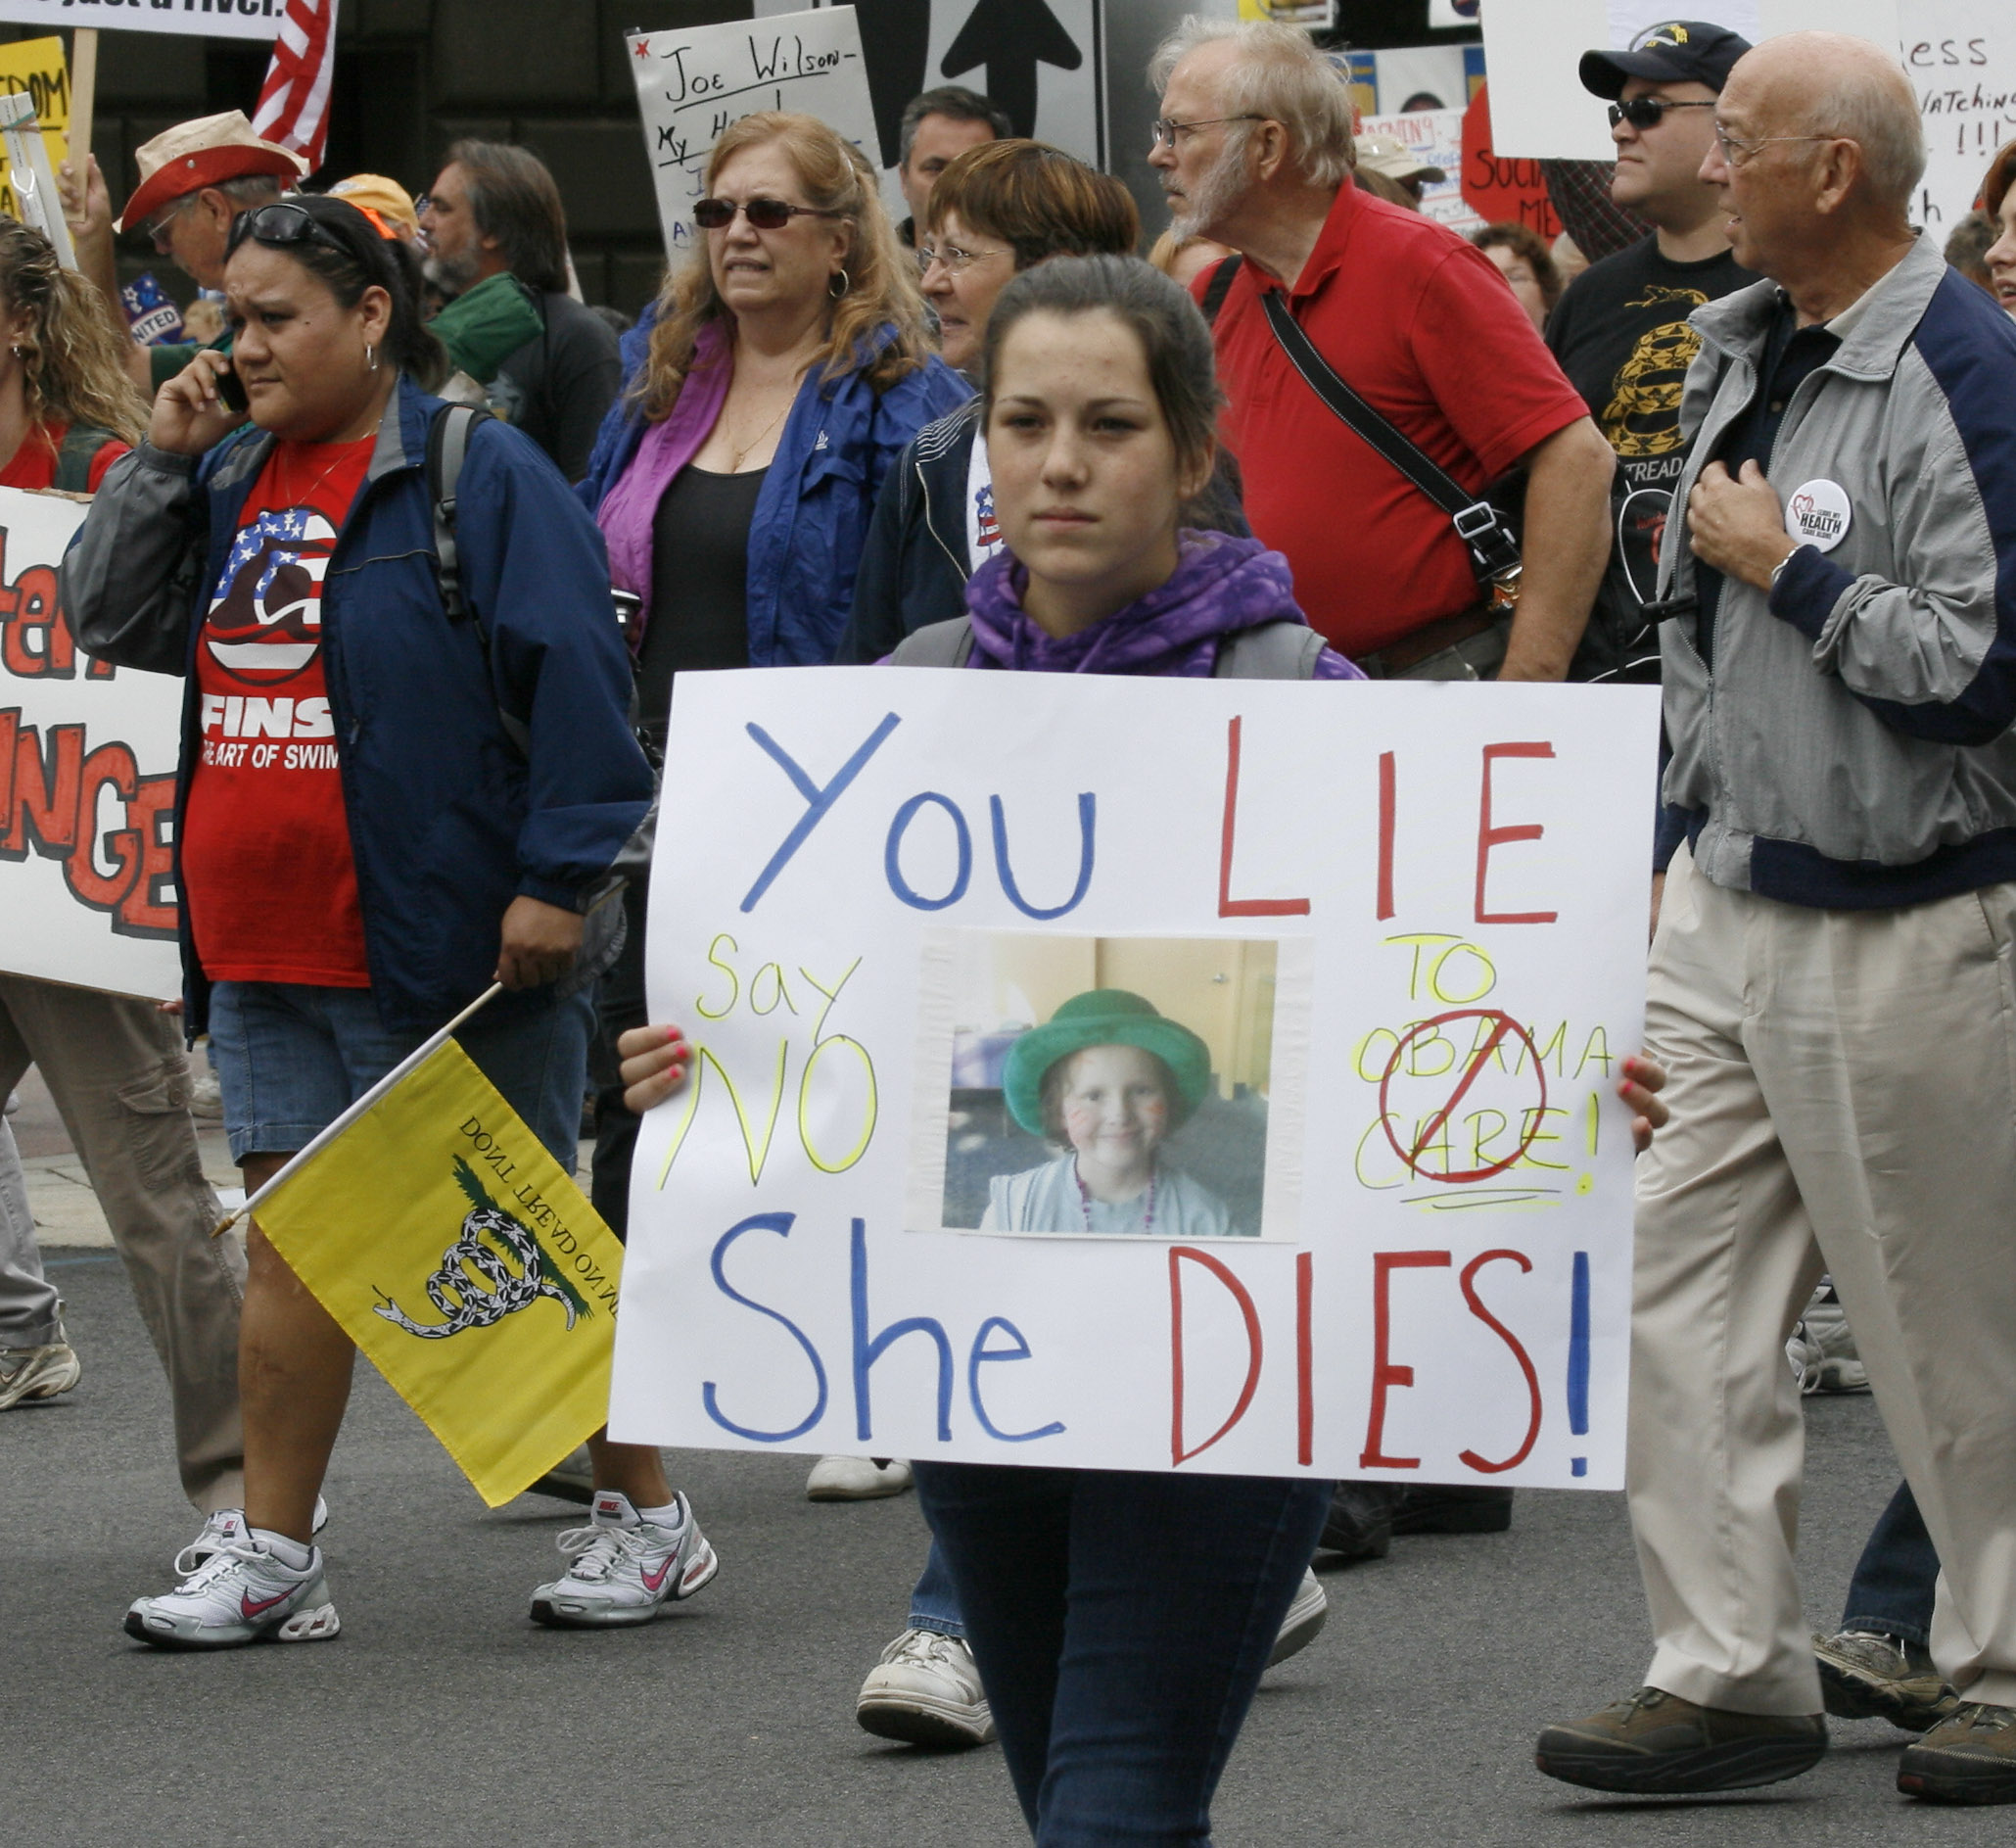 File:Protest sign - Tea Party.jpg - Wikimedia Commons